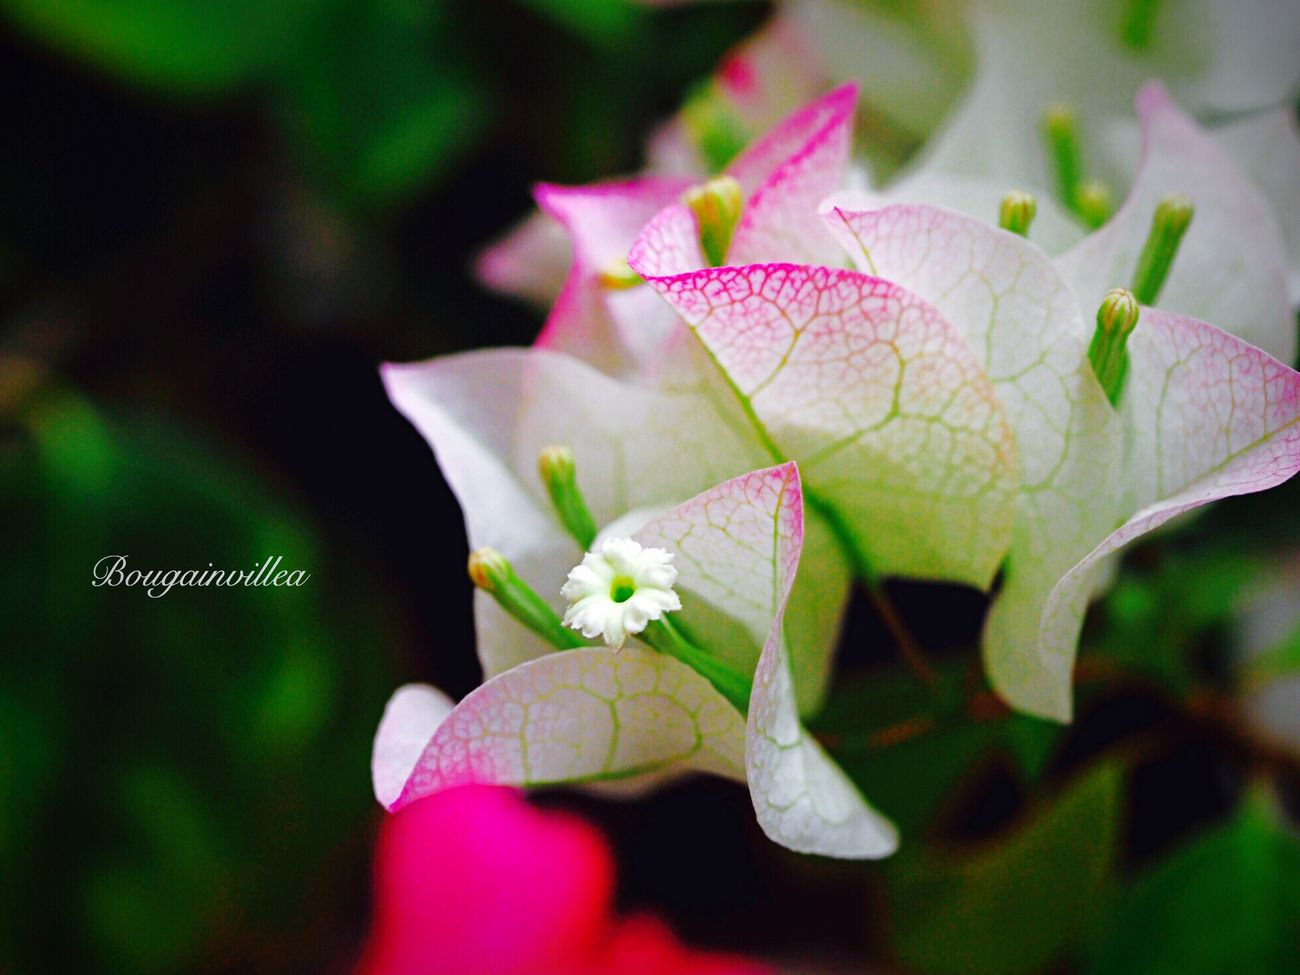 ブーゲンビリア Bougainvillea Flower 花 Enjoying Life EyeEm Best Edits EyeEm Flower EyeEm Nature Lover